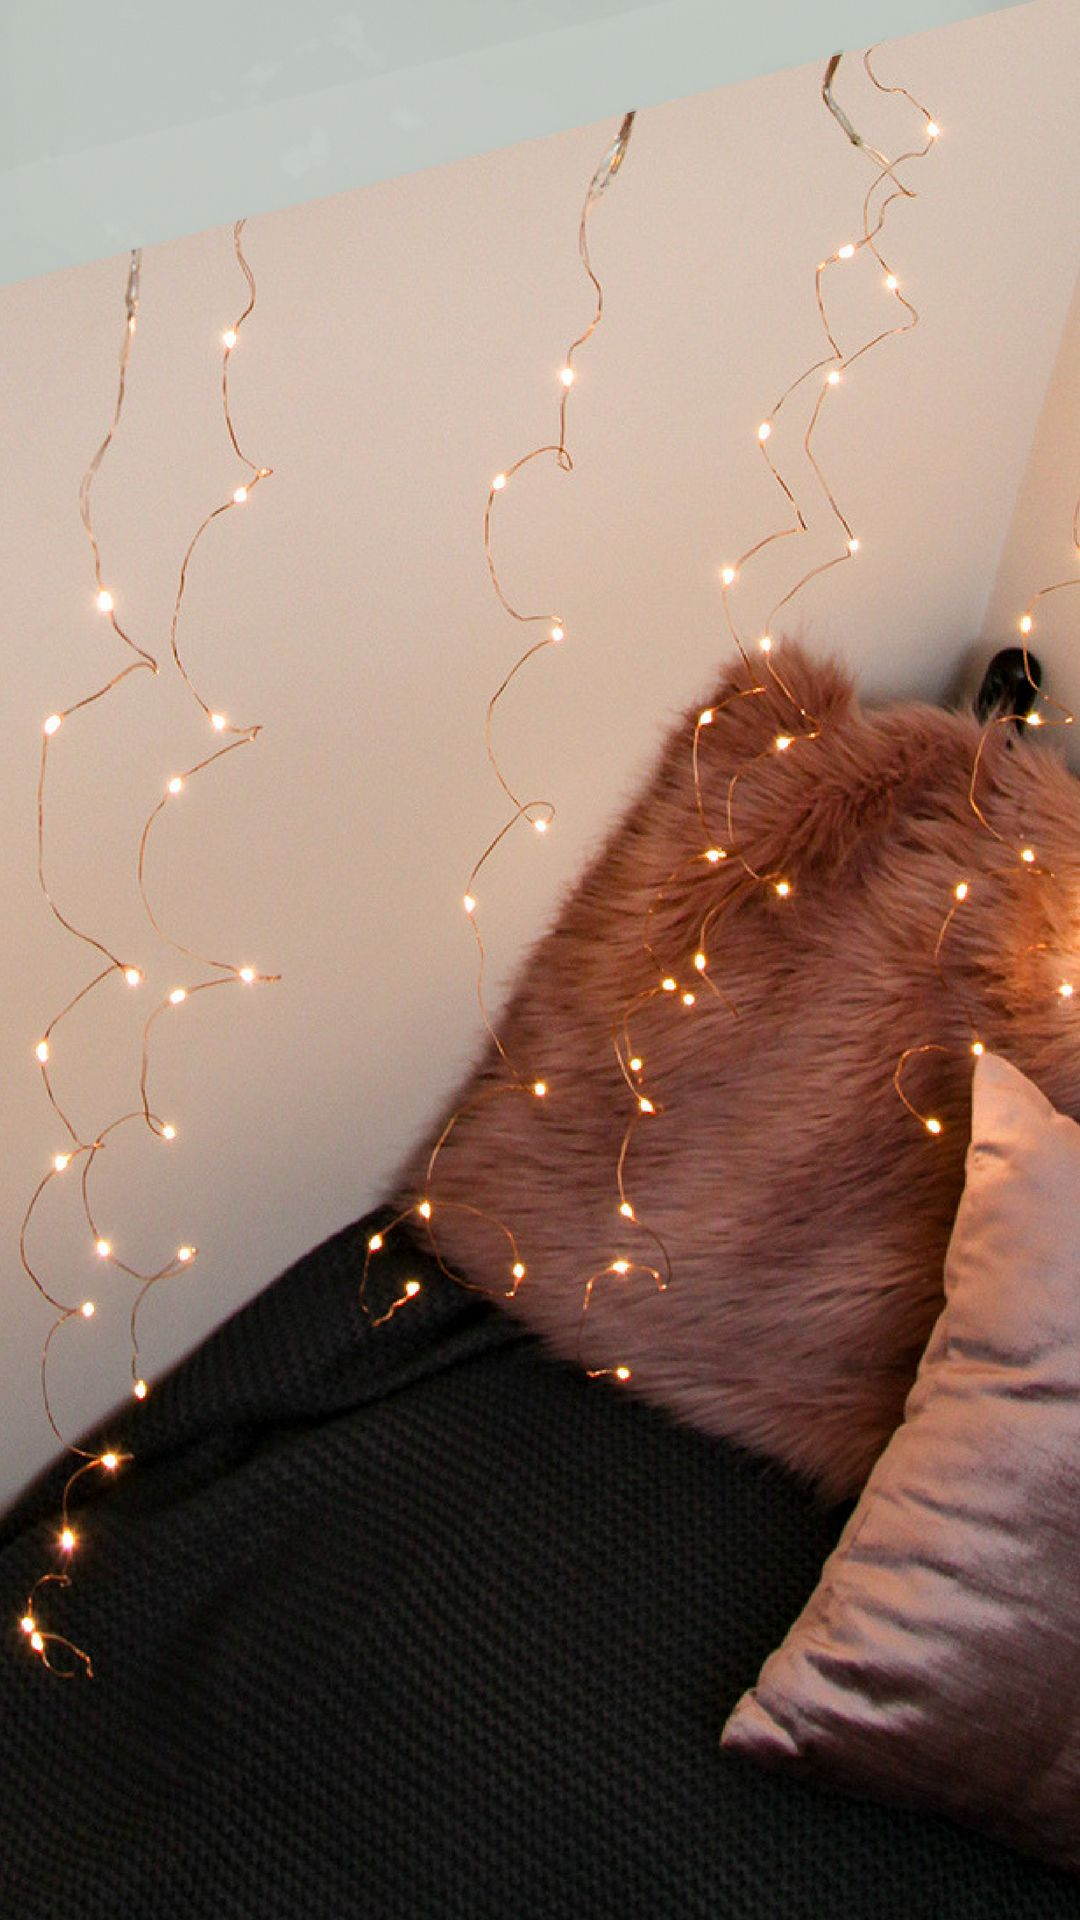 1m X 1m Plug In Copper Firefly Wire Curtain Lights 100 Warm White